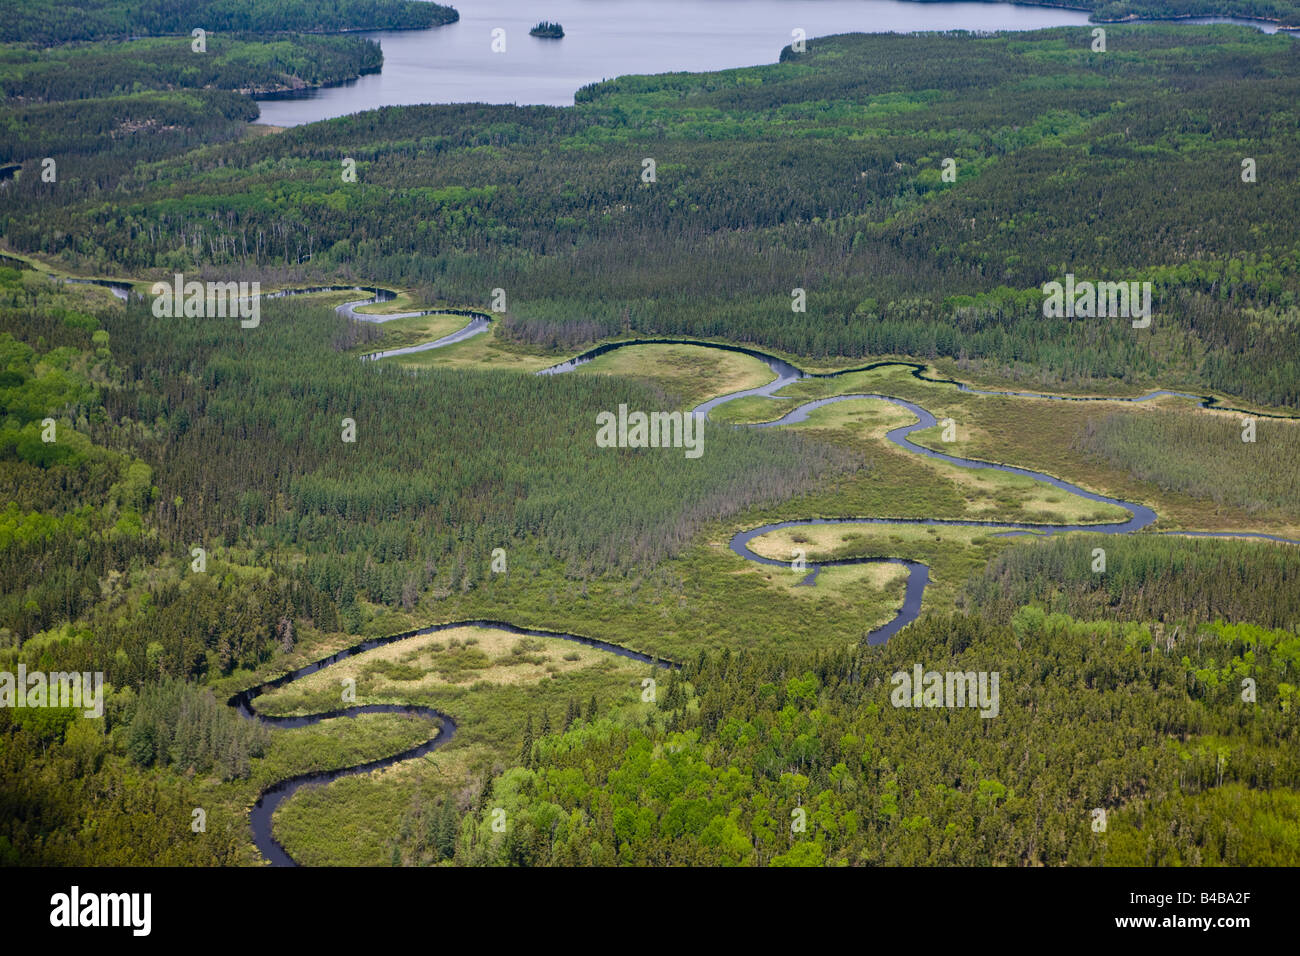 Aerial view of lakes, Islands and forest of Northern Ontario, Red Lake, Ontario, Canada. - Stock Image